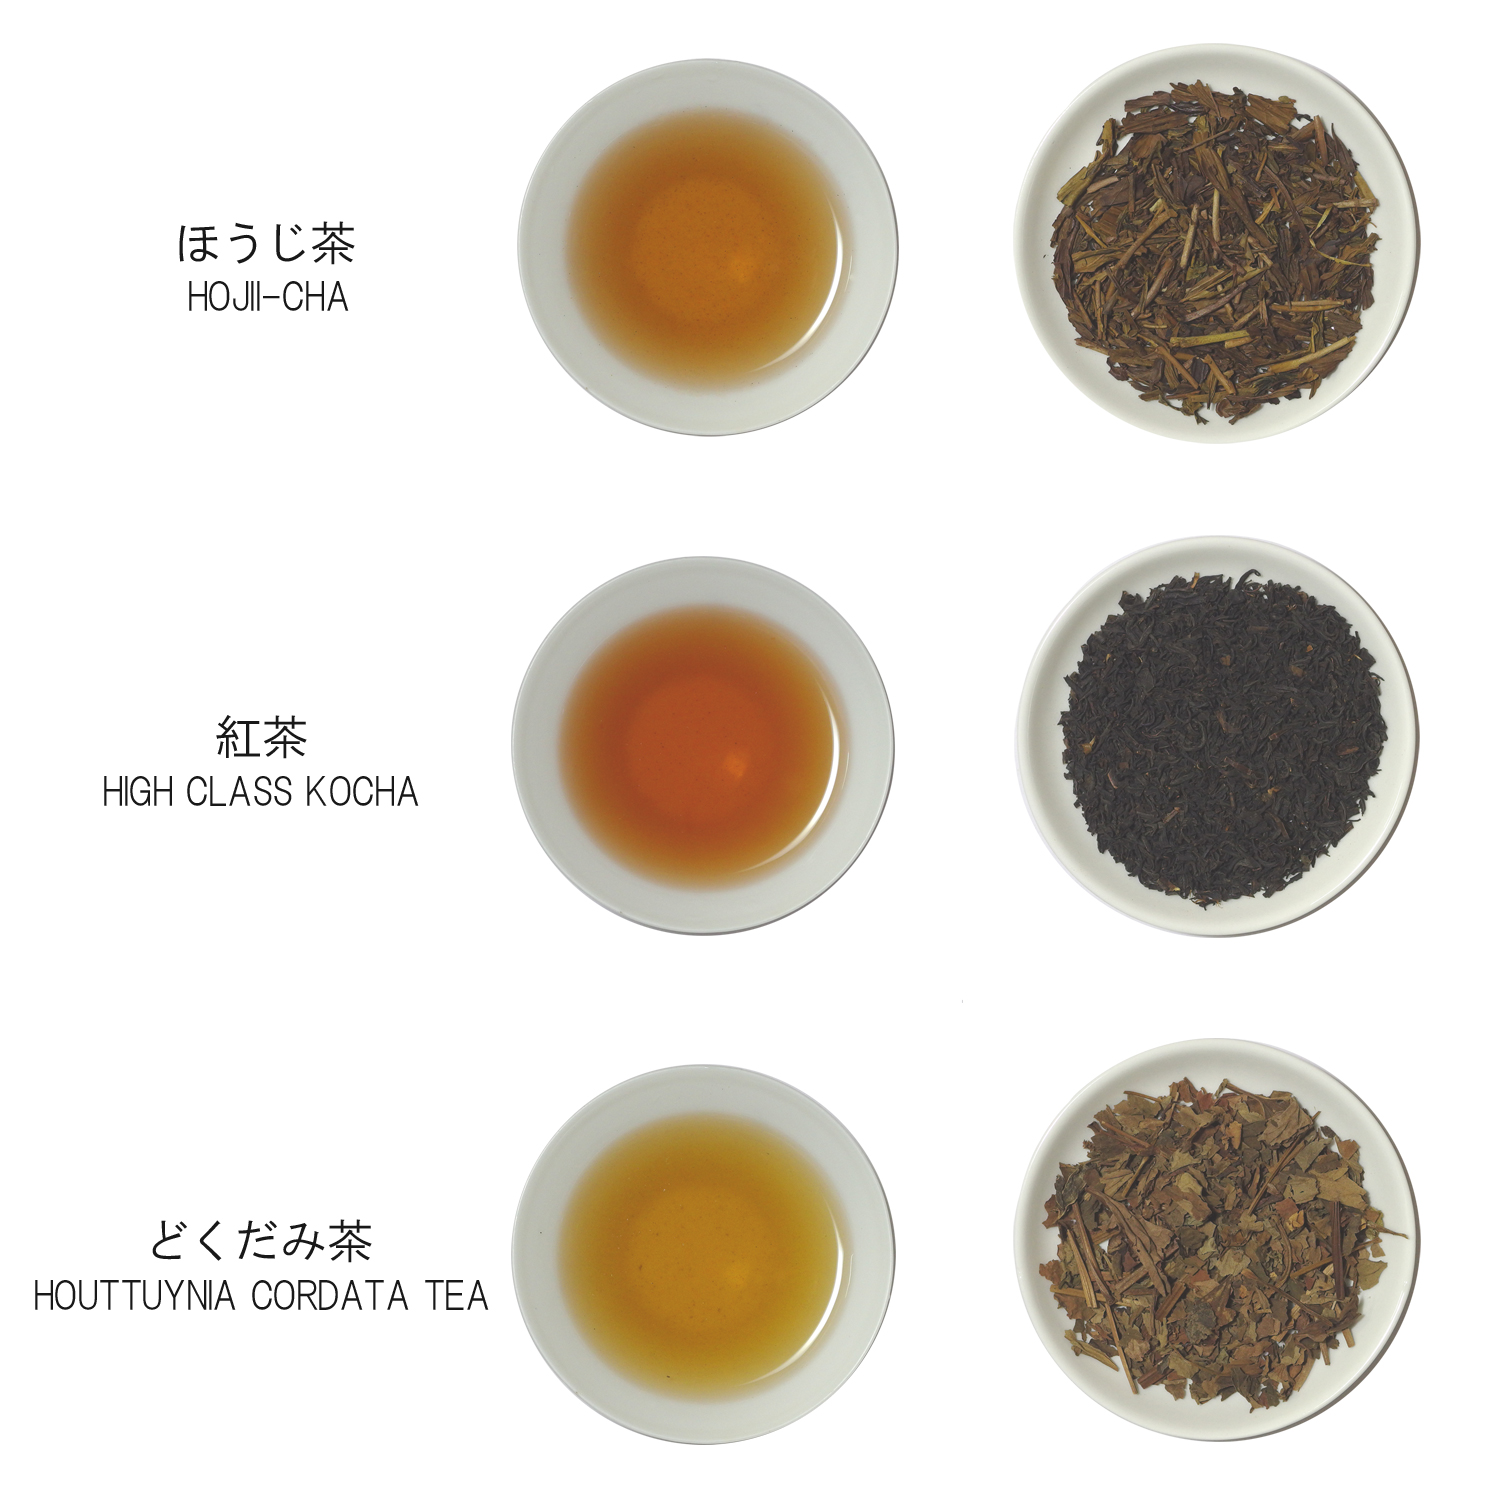 Japan Style Tea Strainer Suitable for Sifting the Green Tea